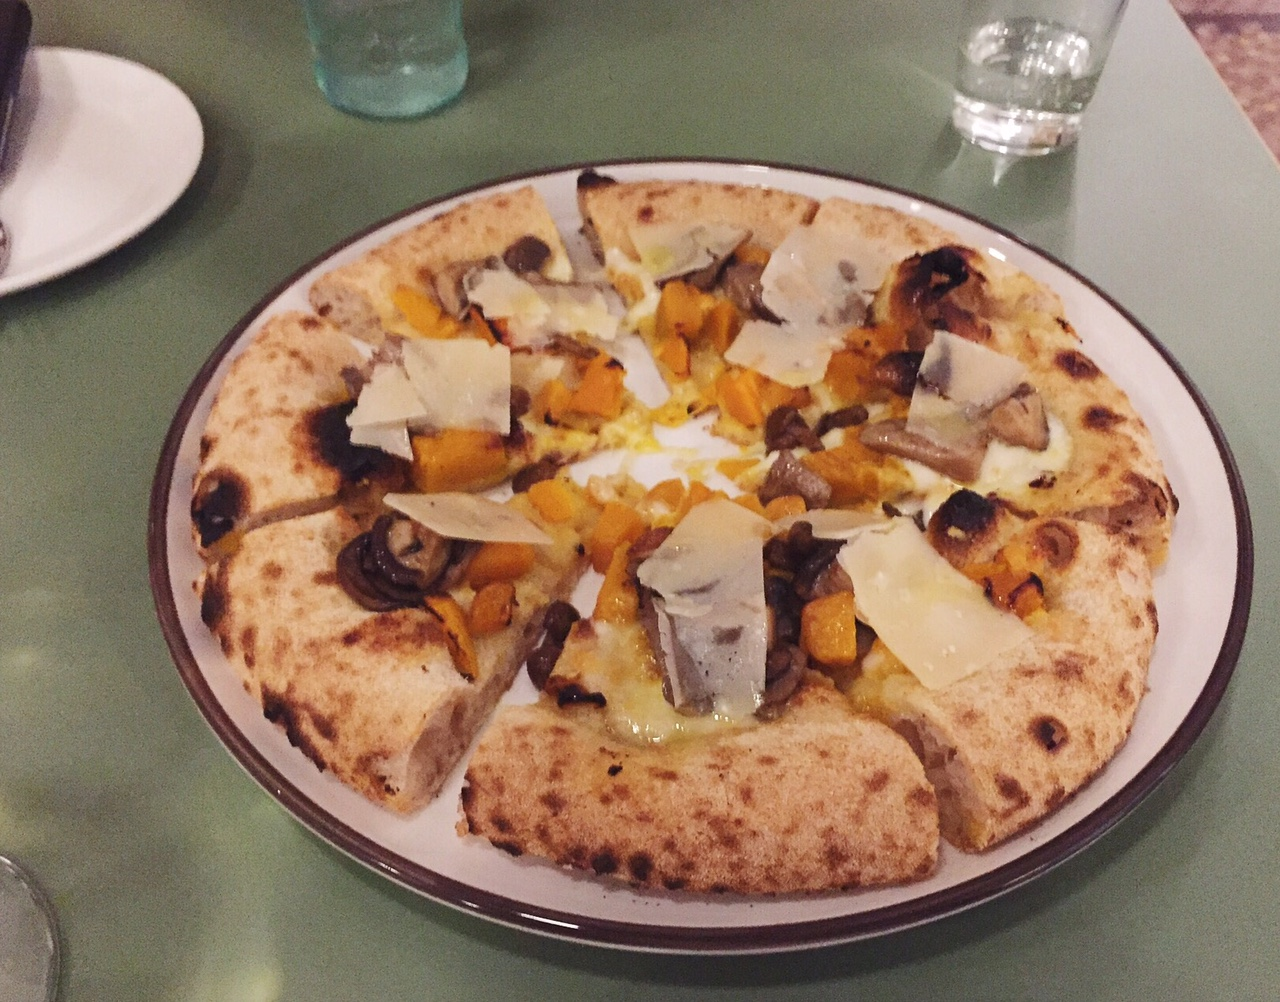 Berbere pizzeria in Milan pumpkin, mushrooms, and parmesan